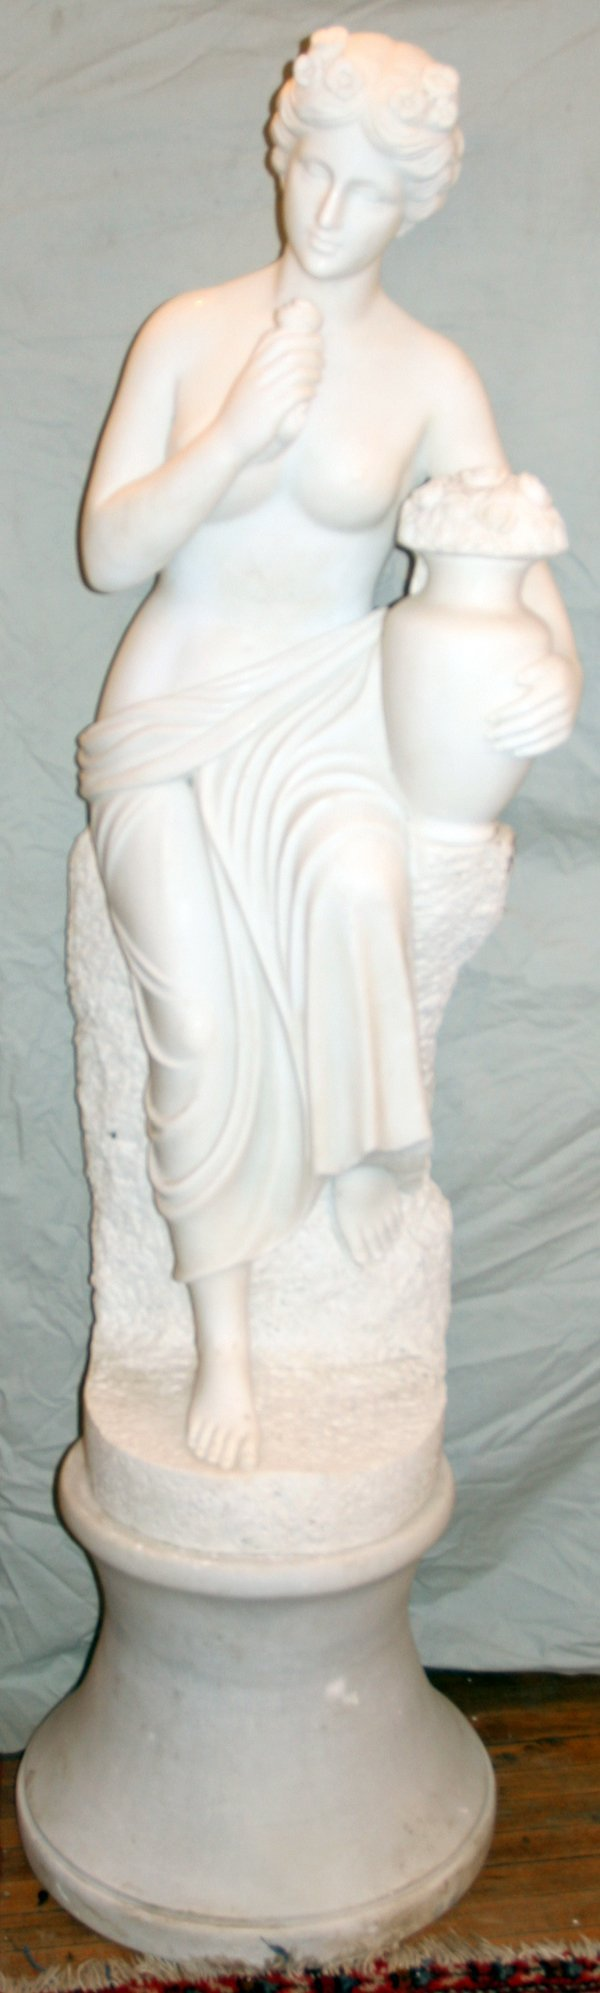 050002: MARBLE NEOCLASSIC STYLE SCULPTURE & PEDESTAL